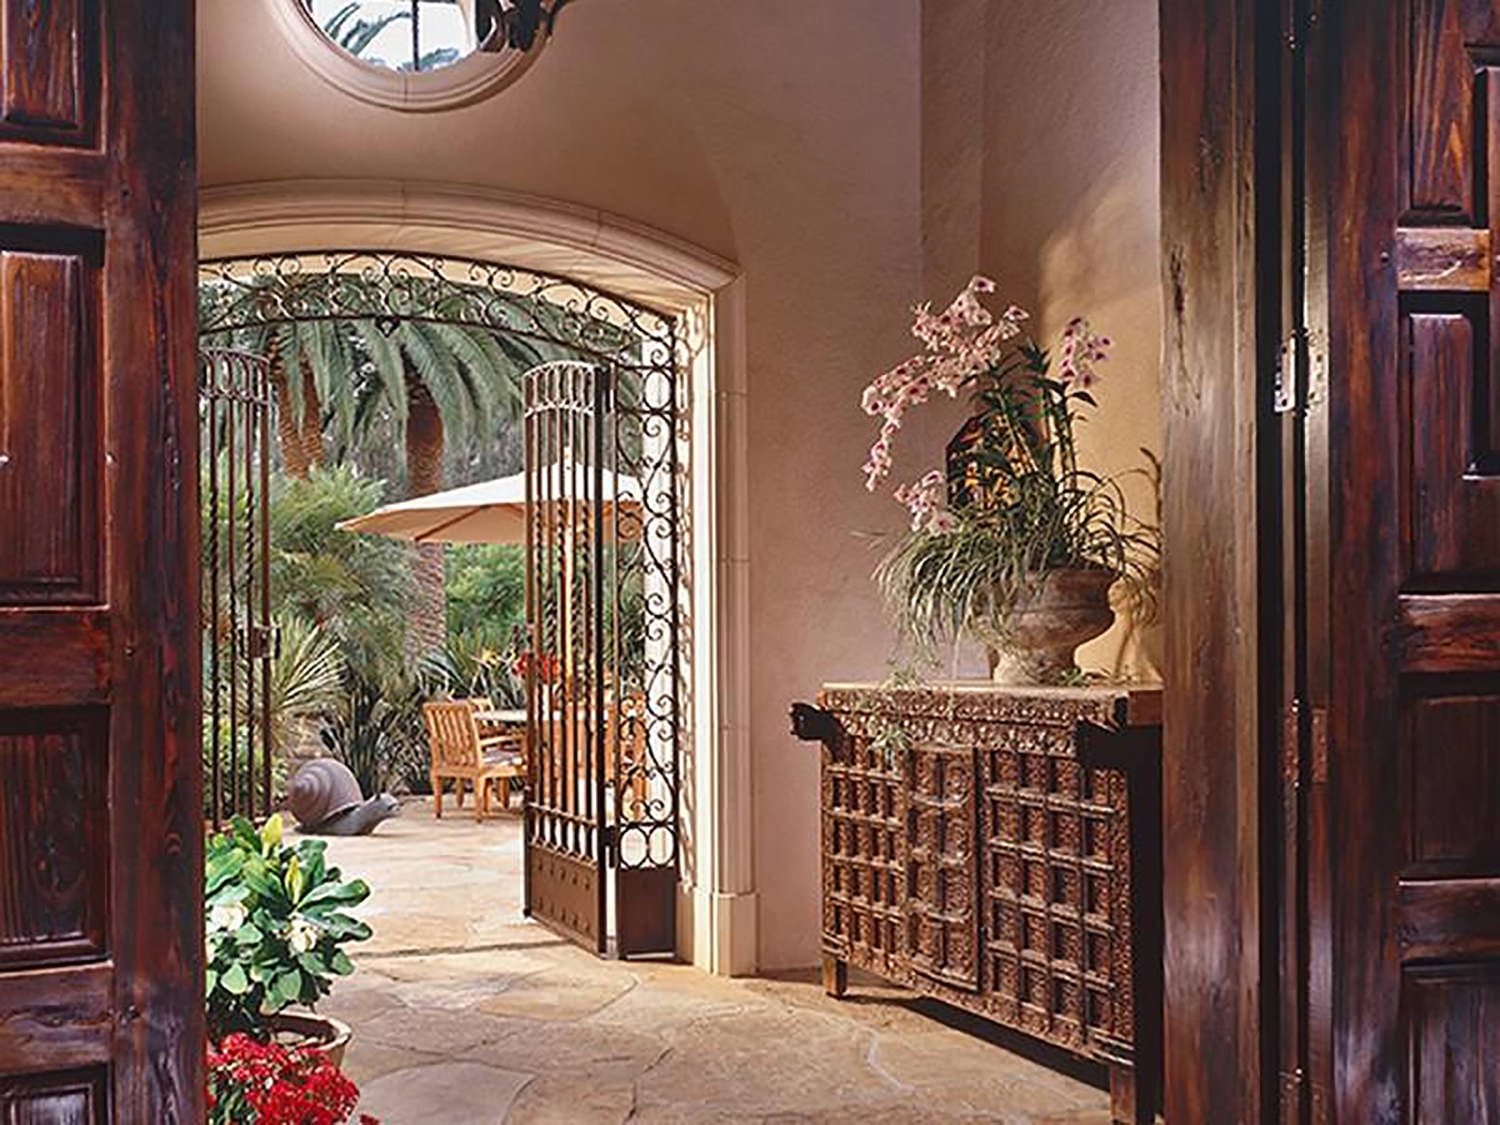 san-diego-california-foyer-into-the-courtyard-remodel-interior-design-montgomery-home.jpg